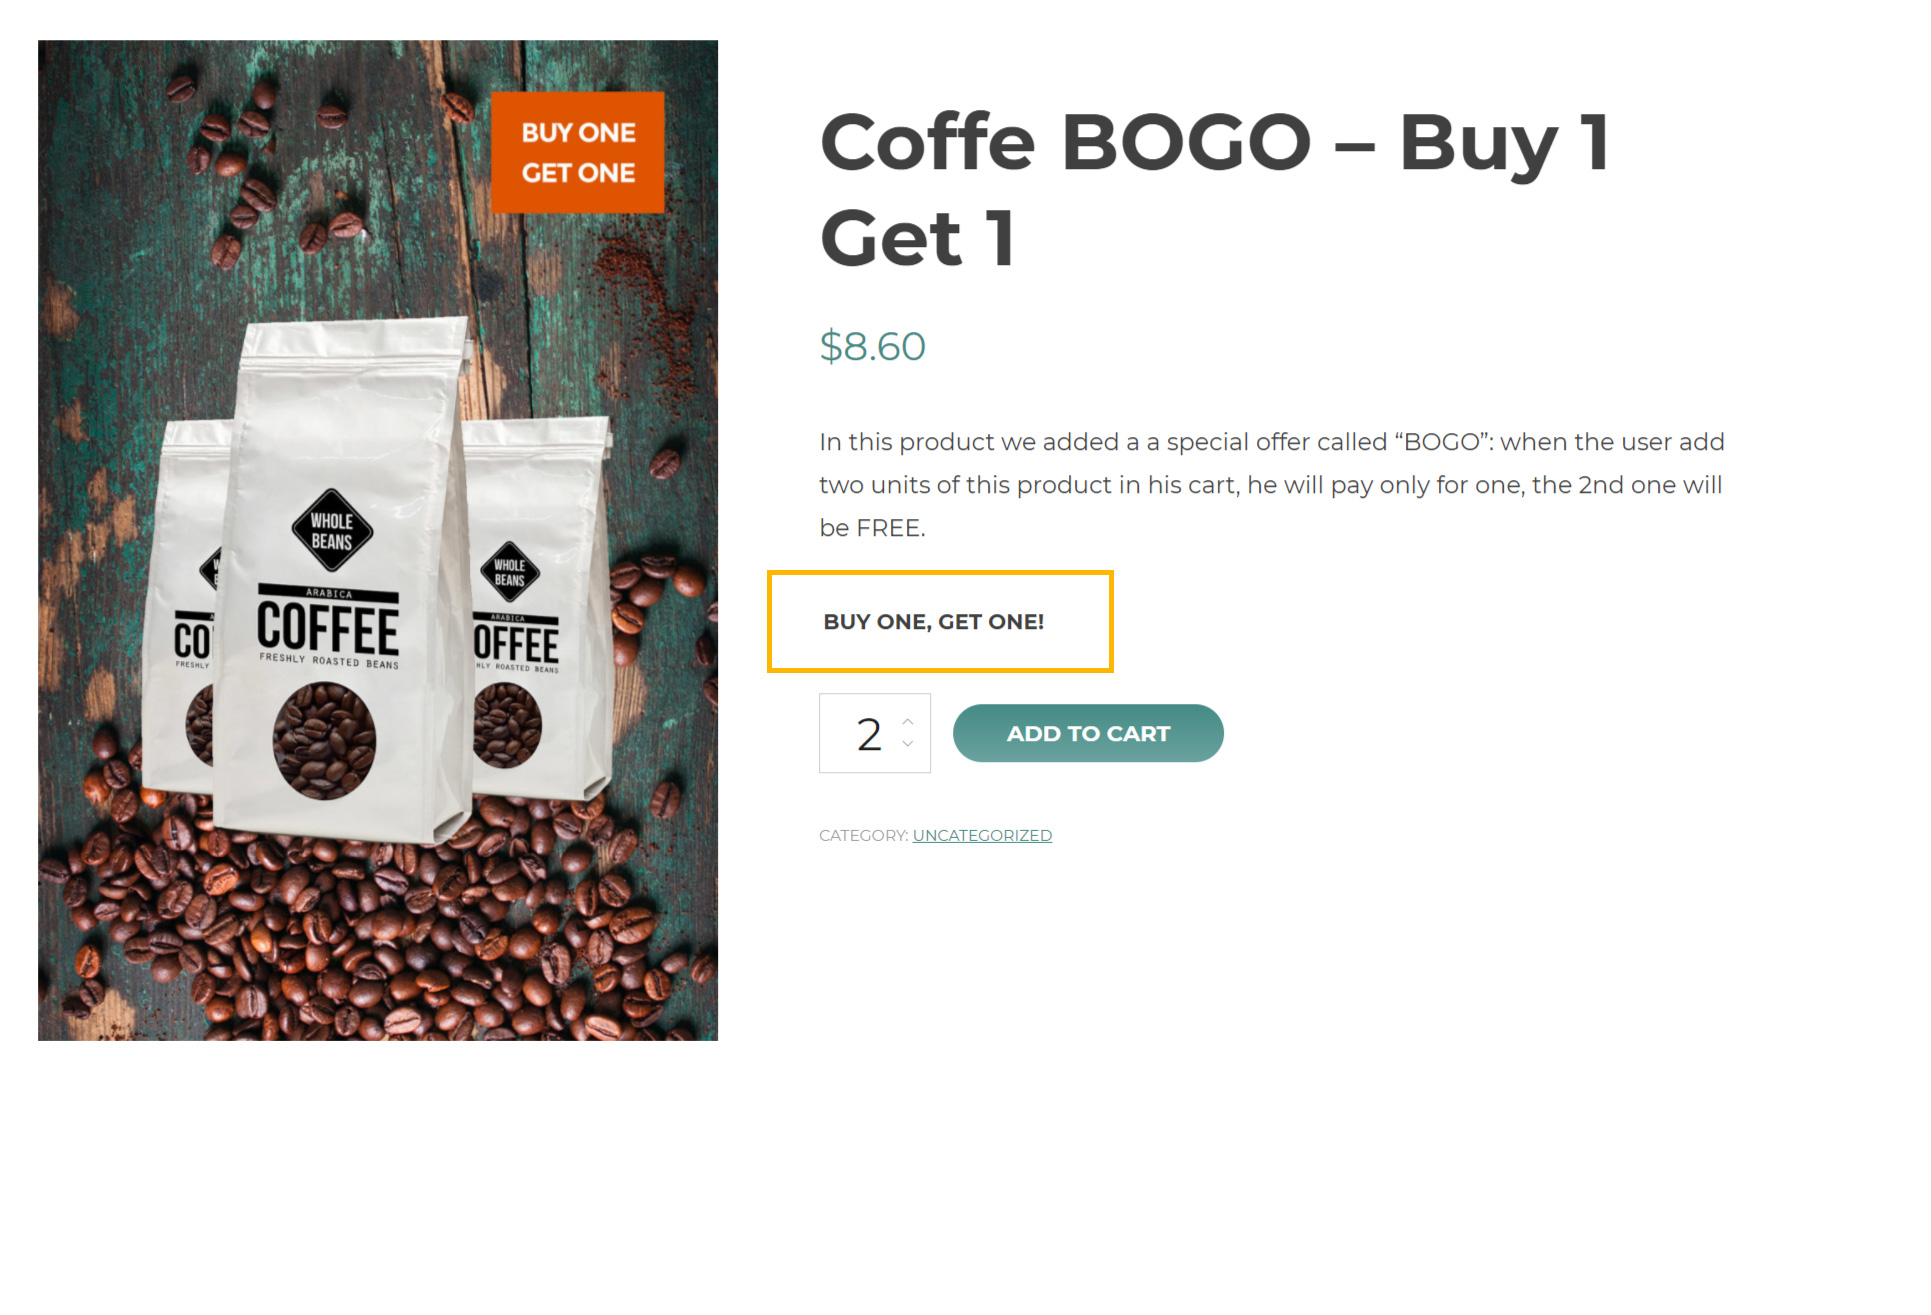 BOGO custom messages on product page